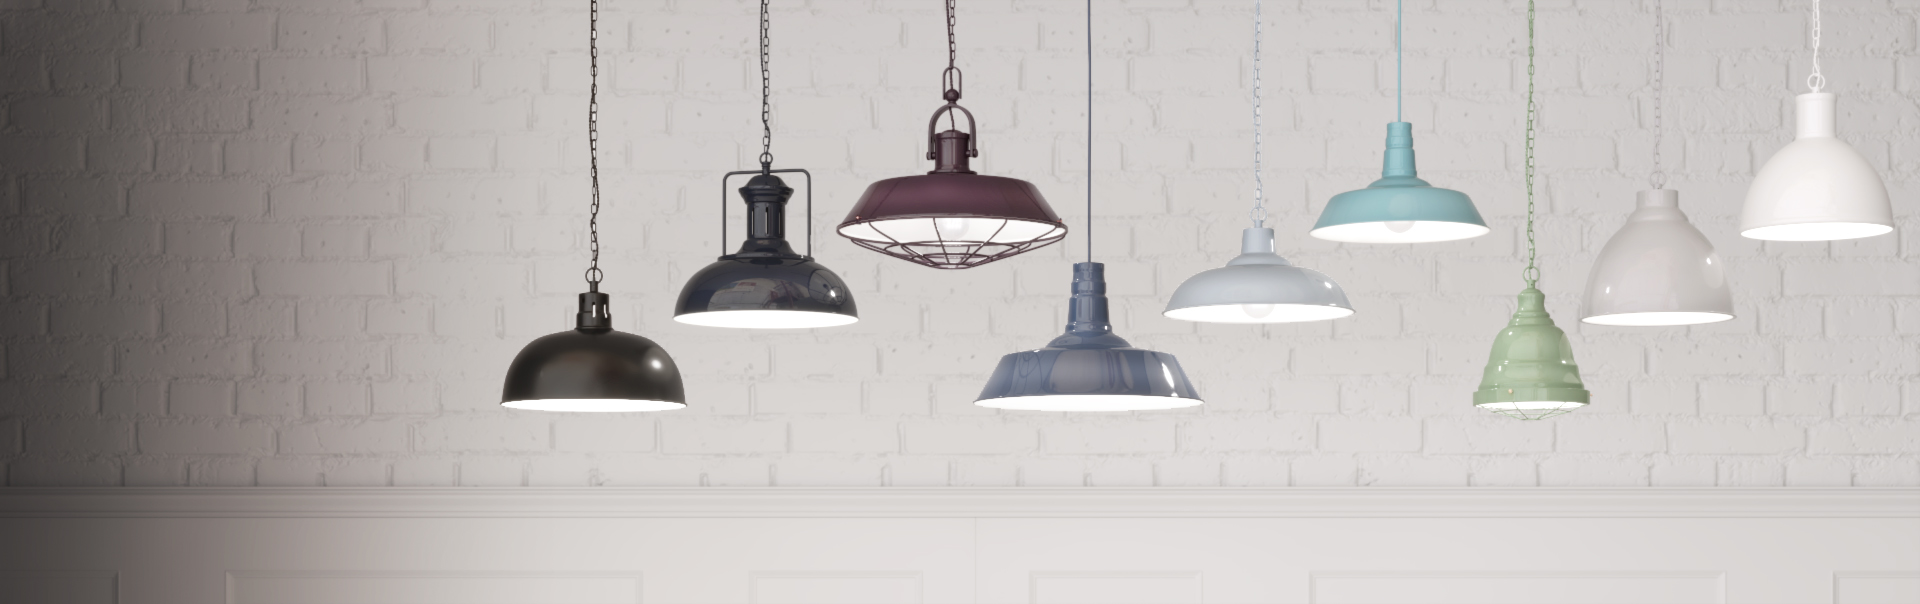 Painted Metal Pendant and Wall Lights